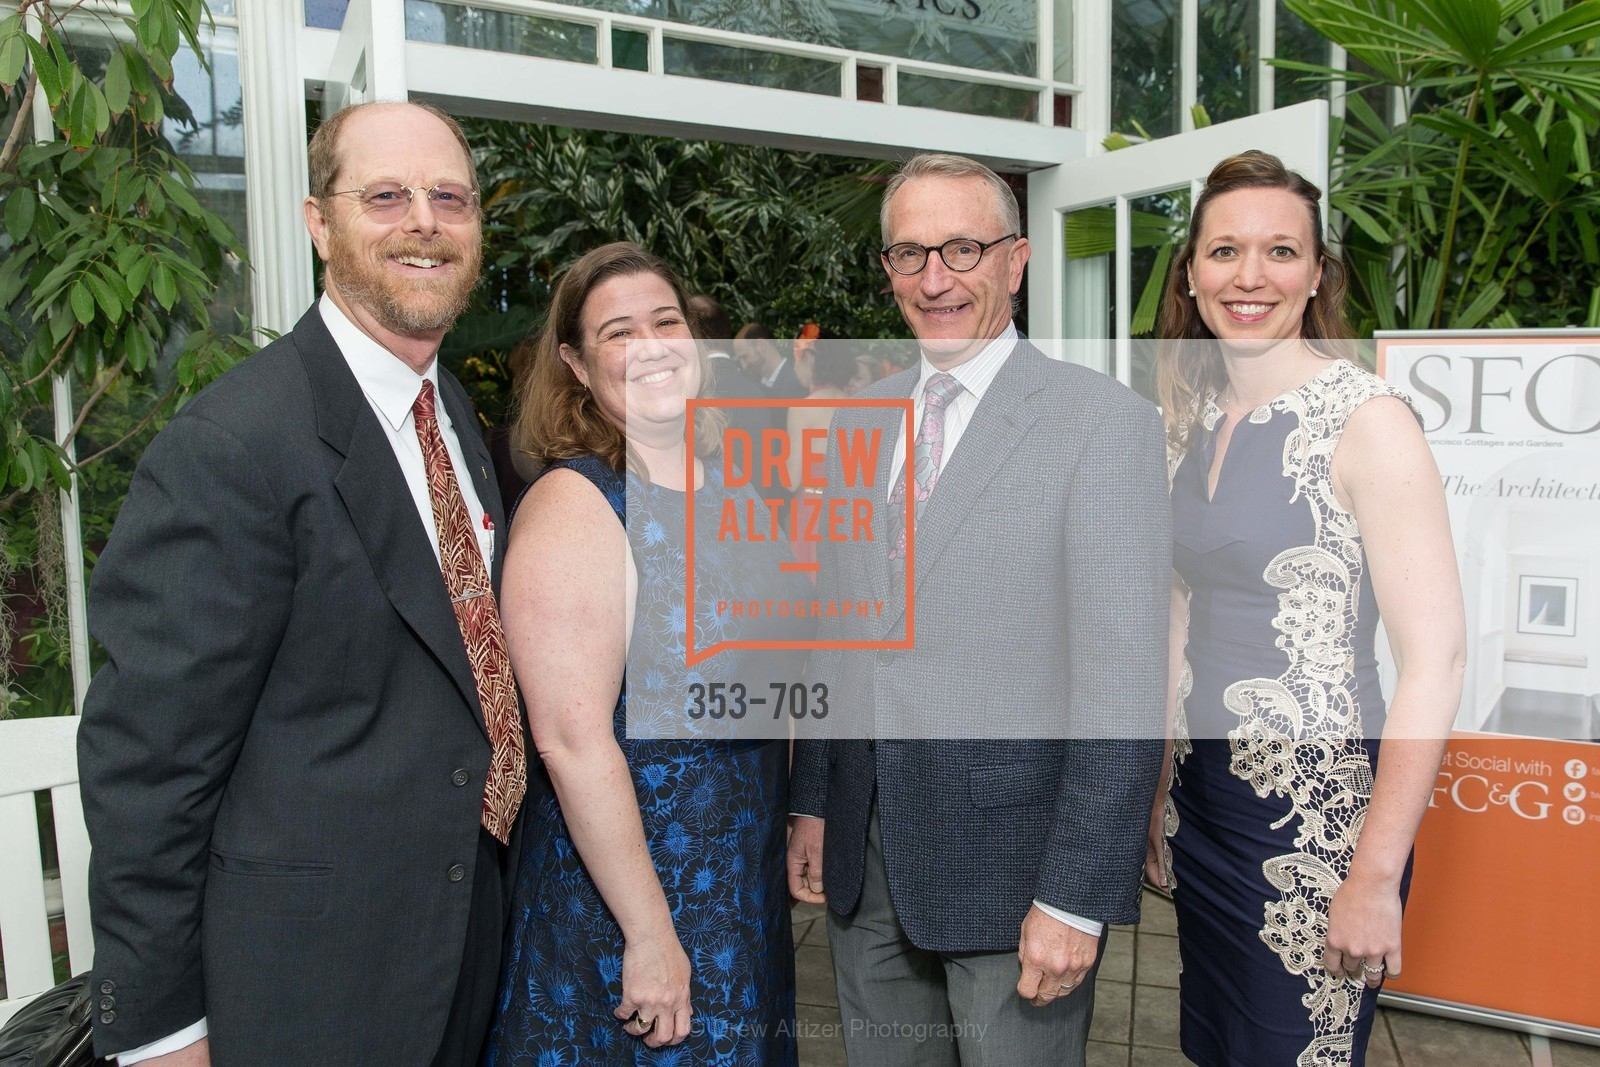 Andrew Blyholder, Kitty Vieth, David Wessel, Lisa Yergovich, CONSERVATORY OF FLOWERS Presents